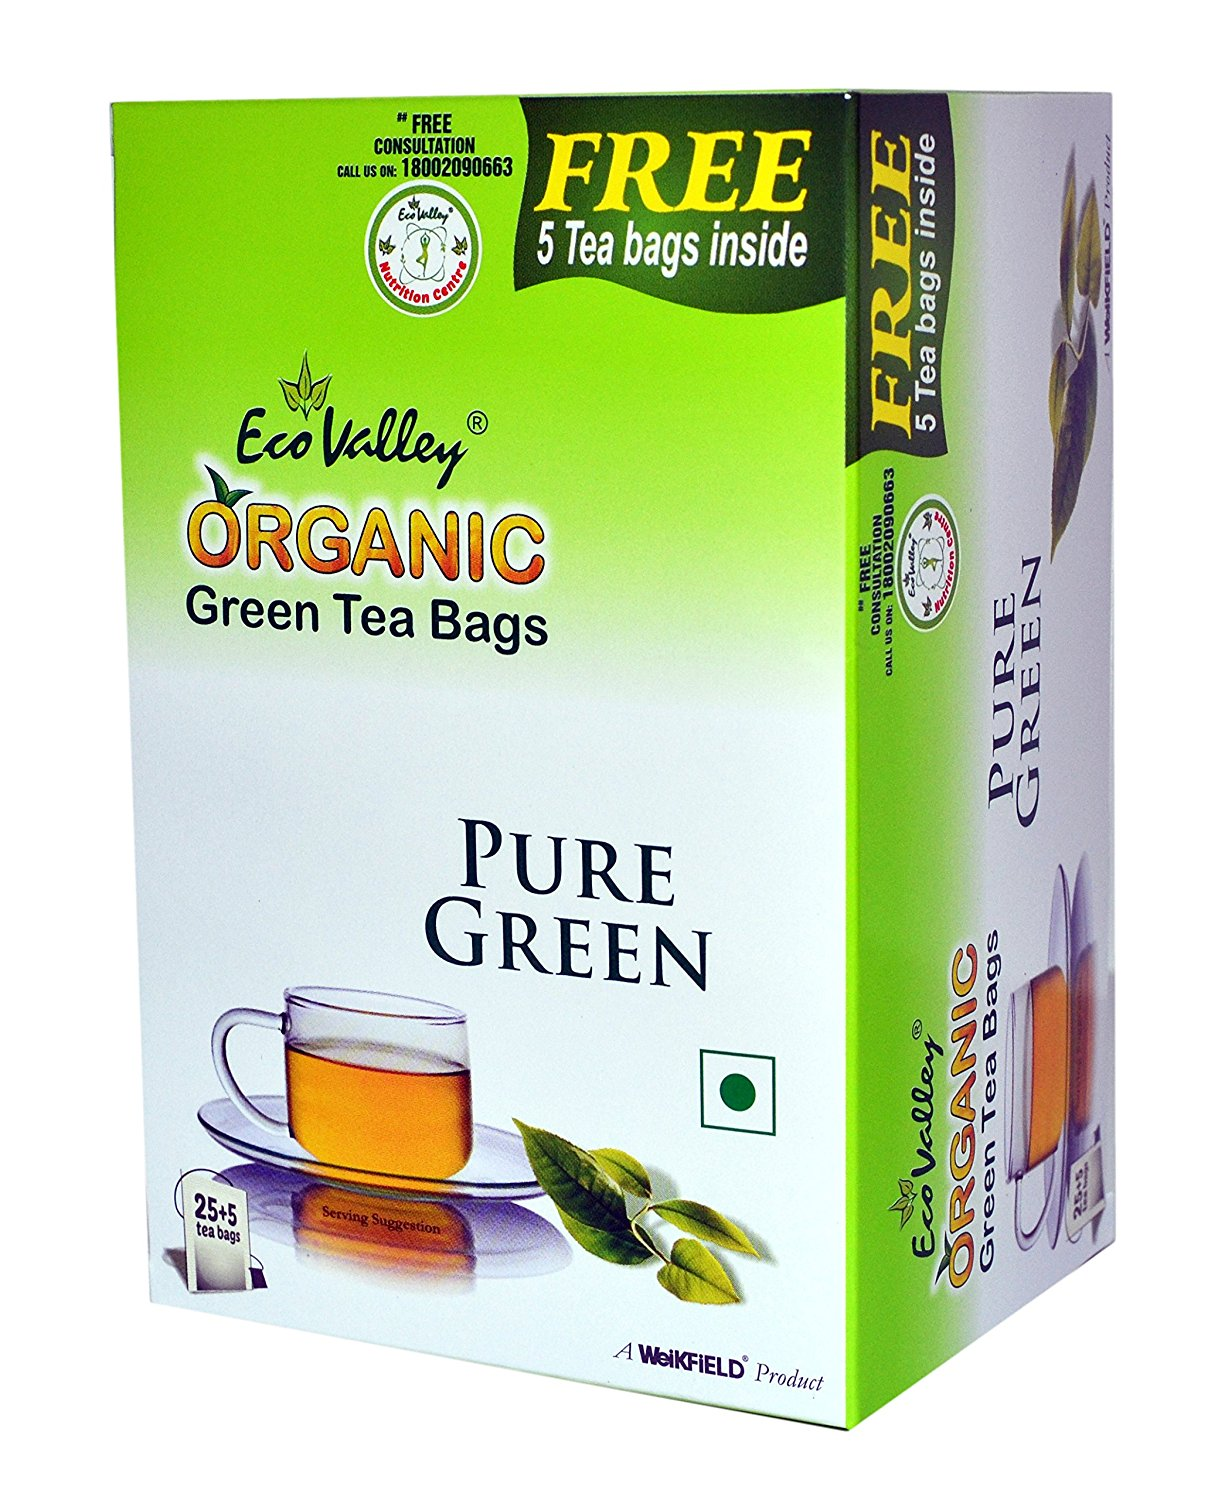 Eco Valley Organic Green Tea, Pure, 25 Tea Bags (FREE 5 Tea Bags ) at Rs. 105 low price